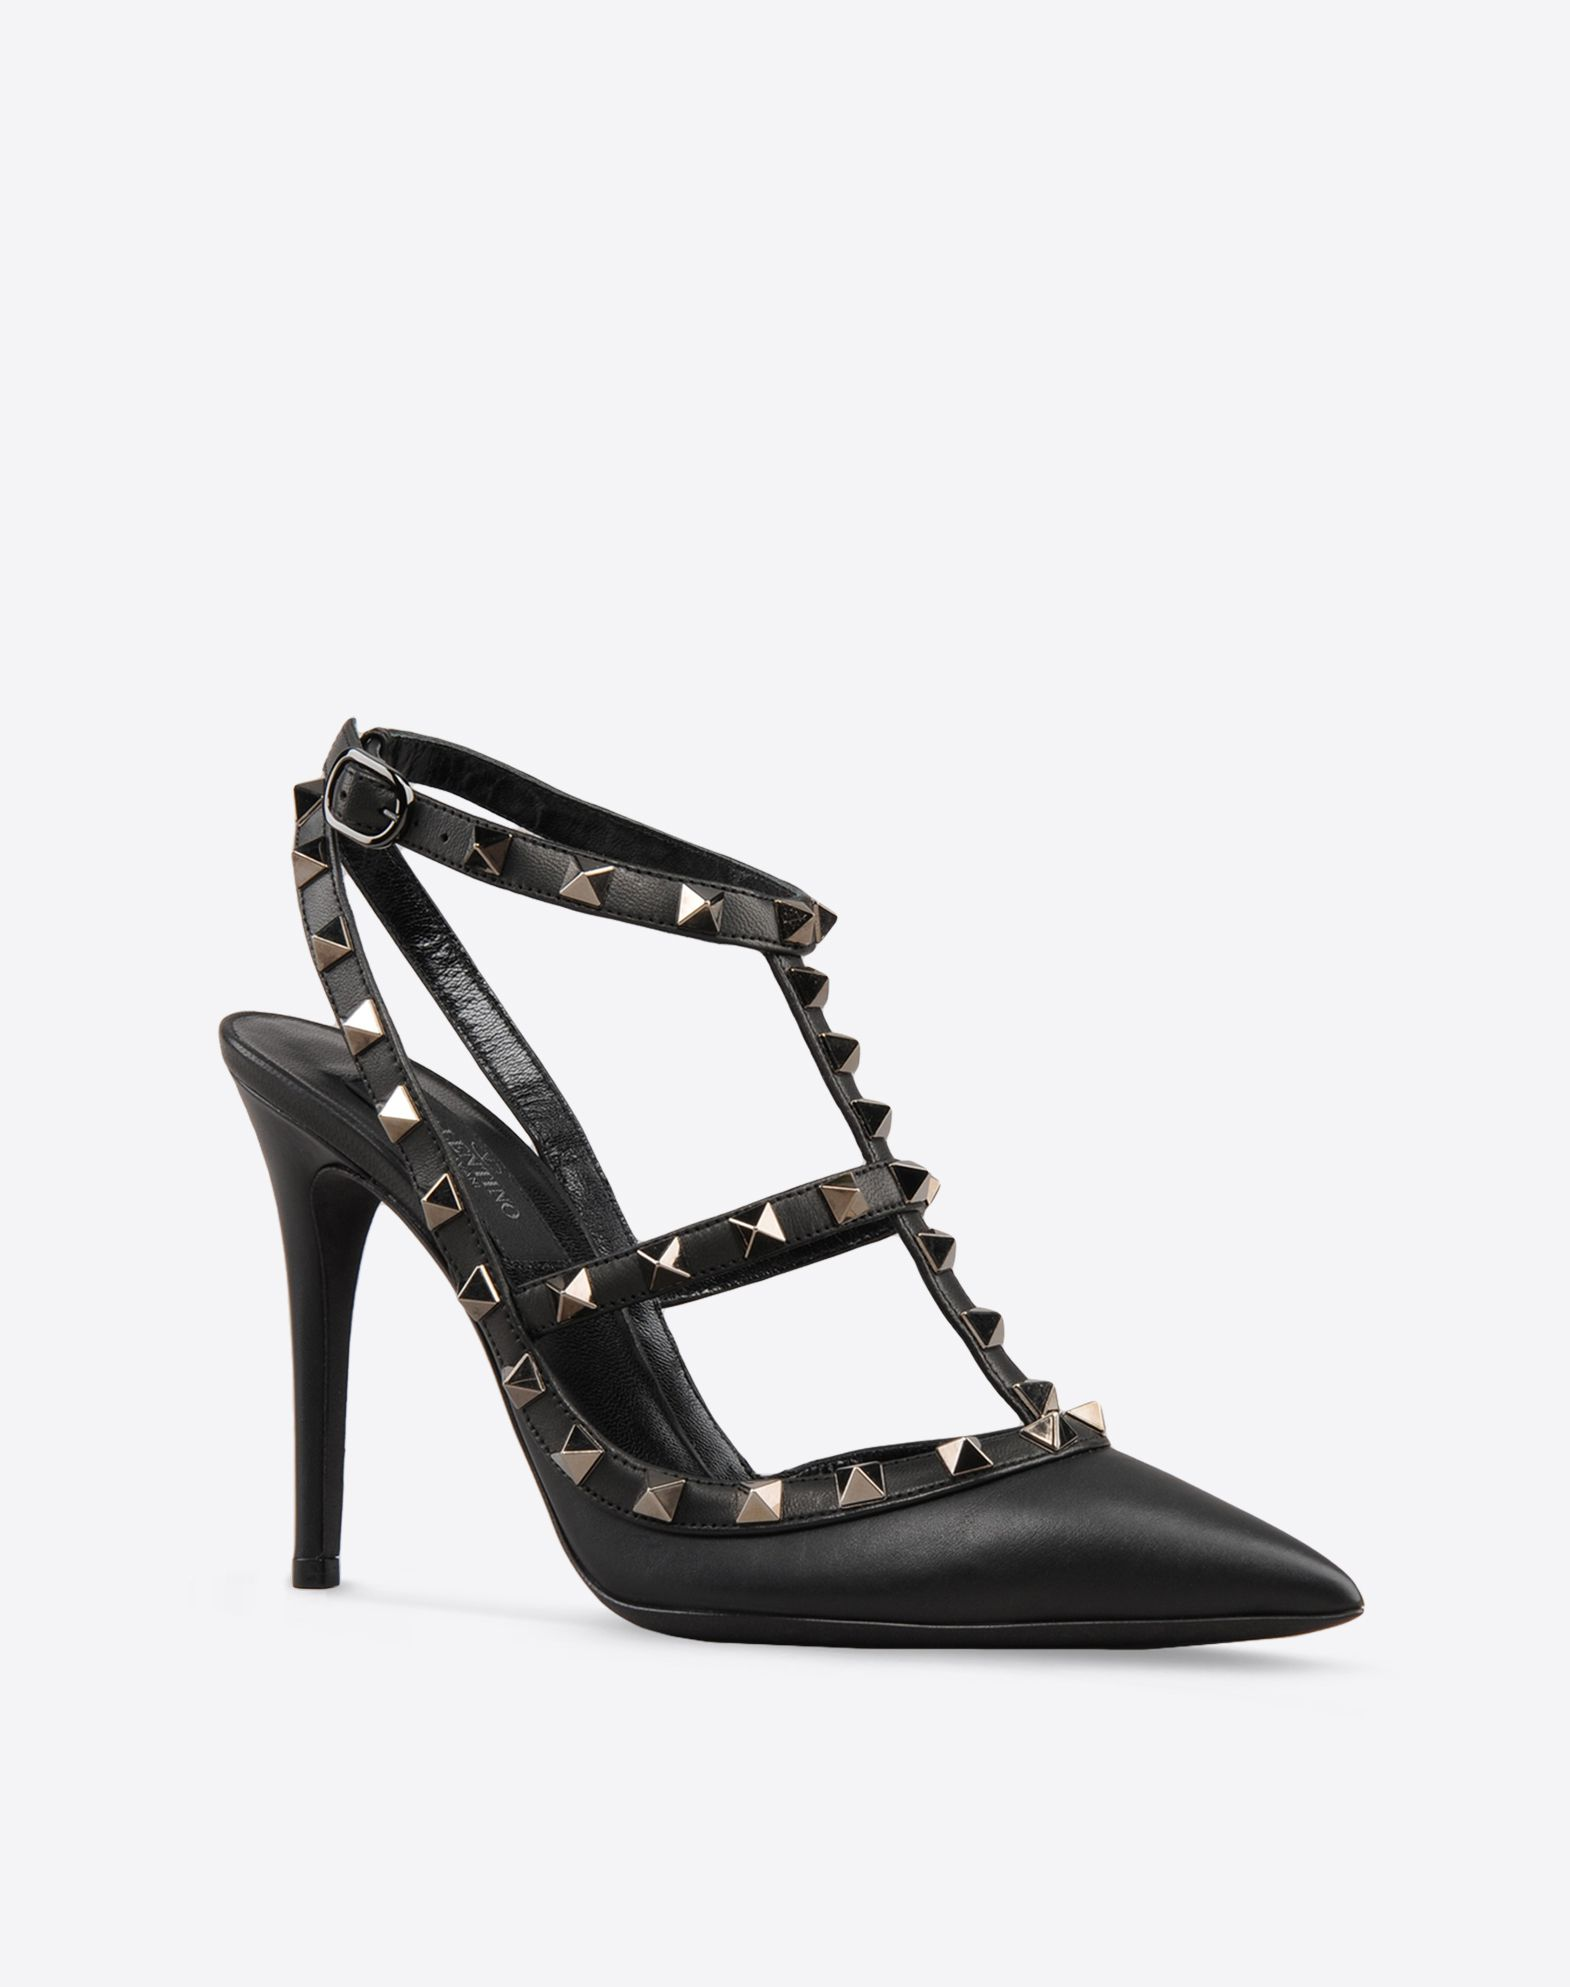 VALENTINO Solid color Side buckle closure Leather sole Contrasting applications Covered heel Narrow toeline  44527144lh